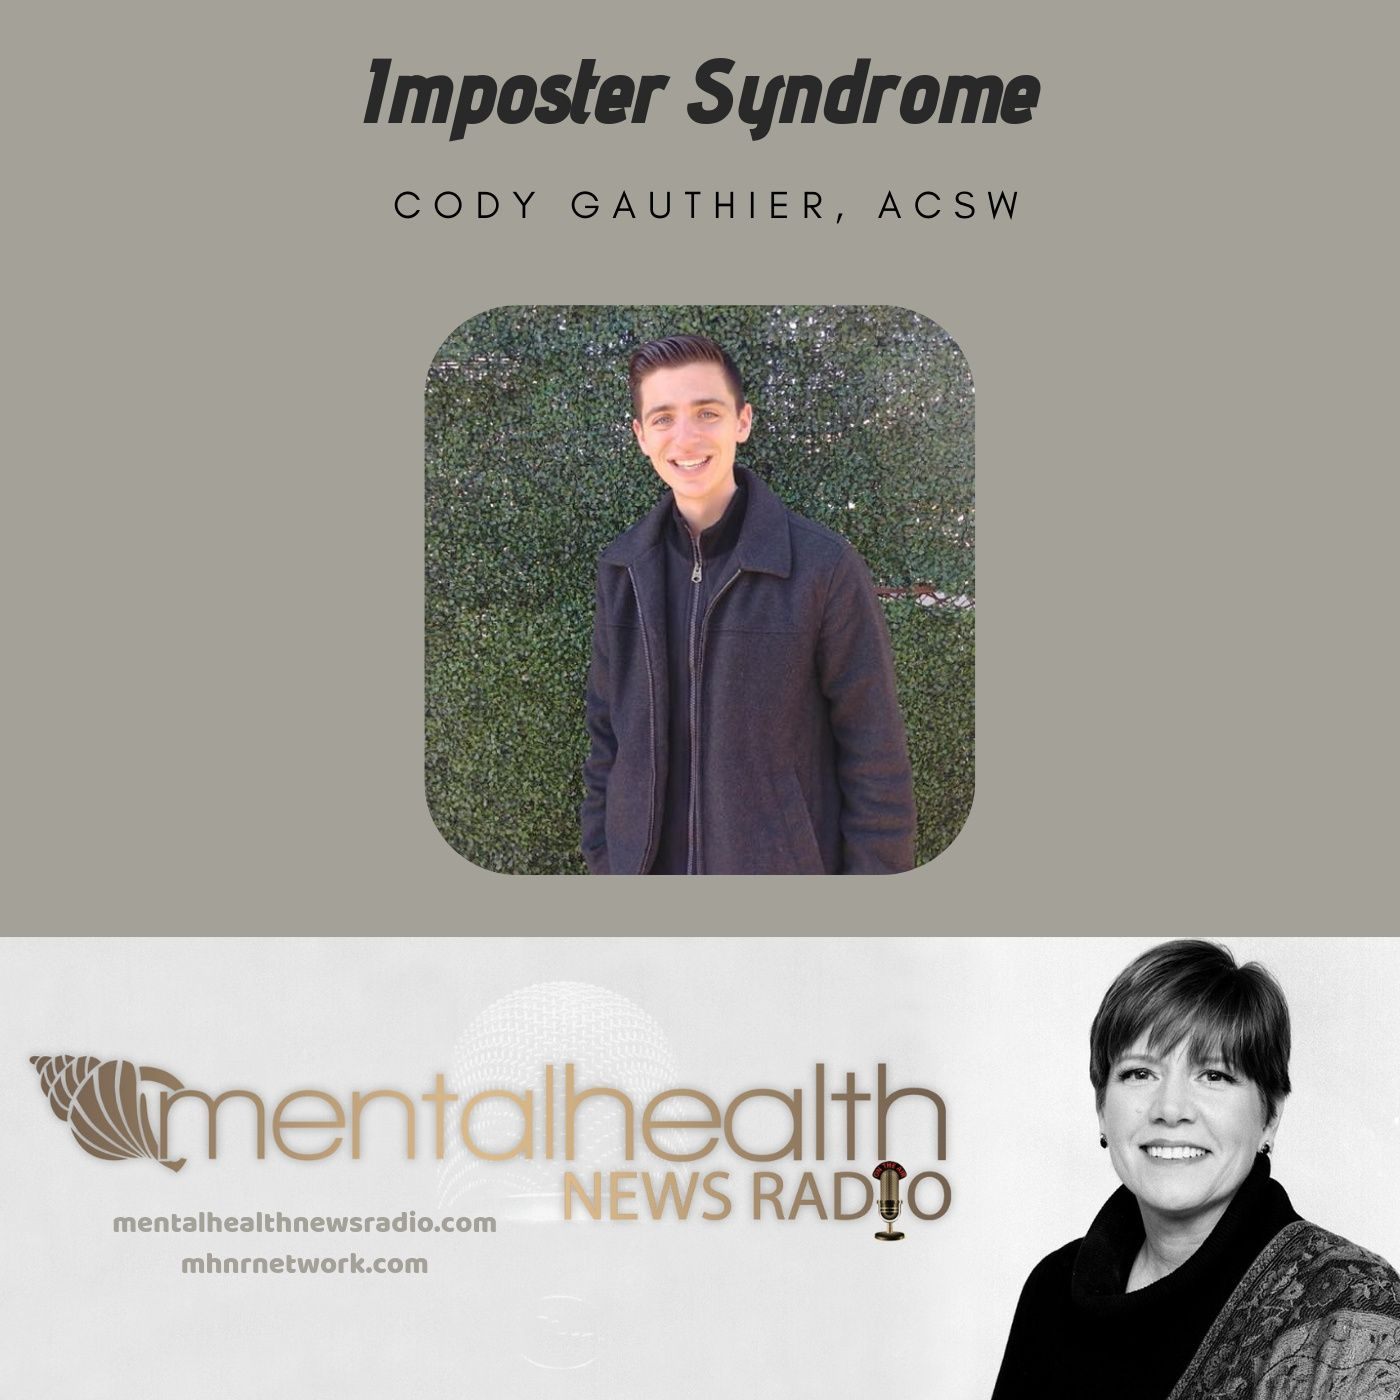 Mental Health News Radio - Imposter Syndrome with Cody Gauthier